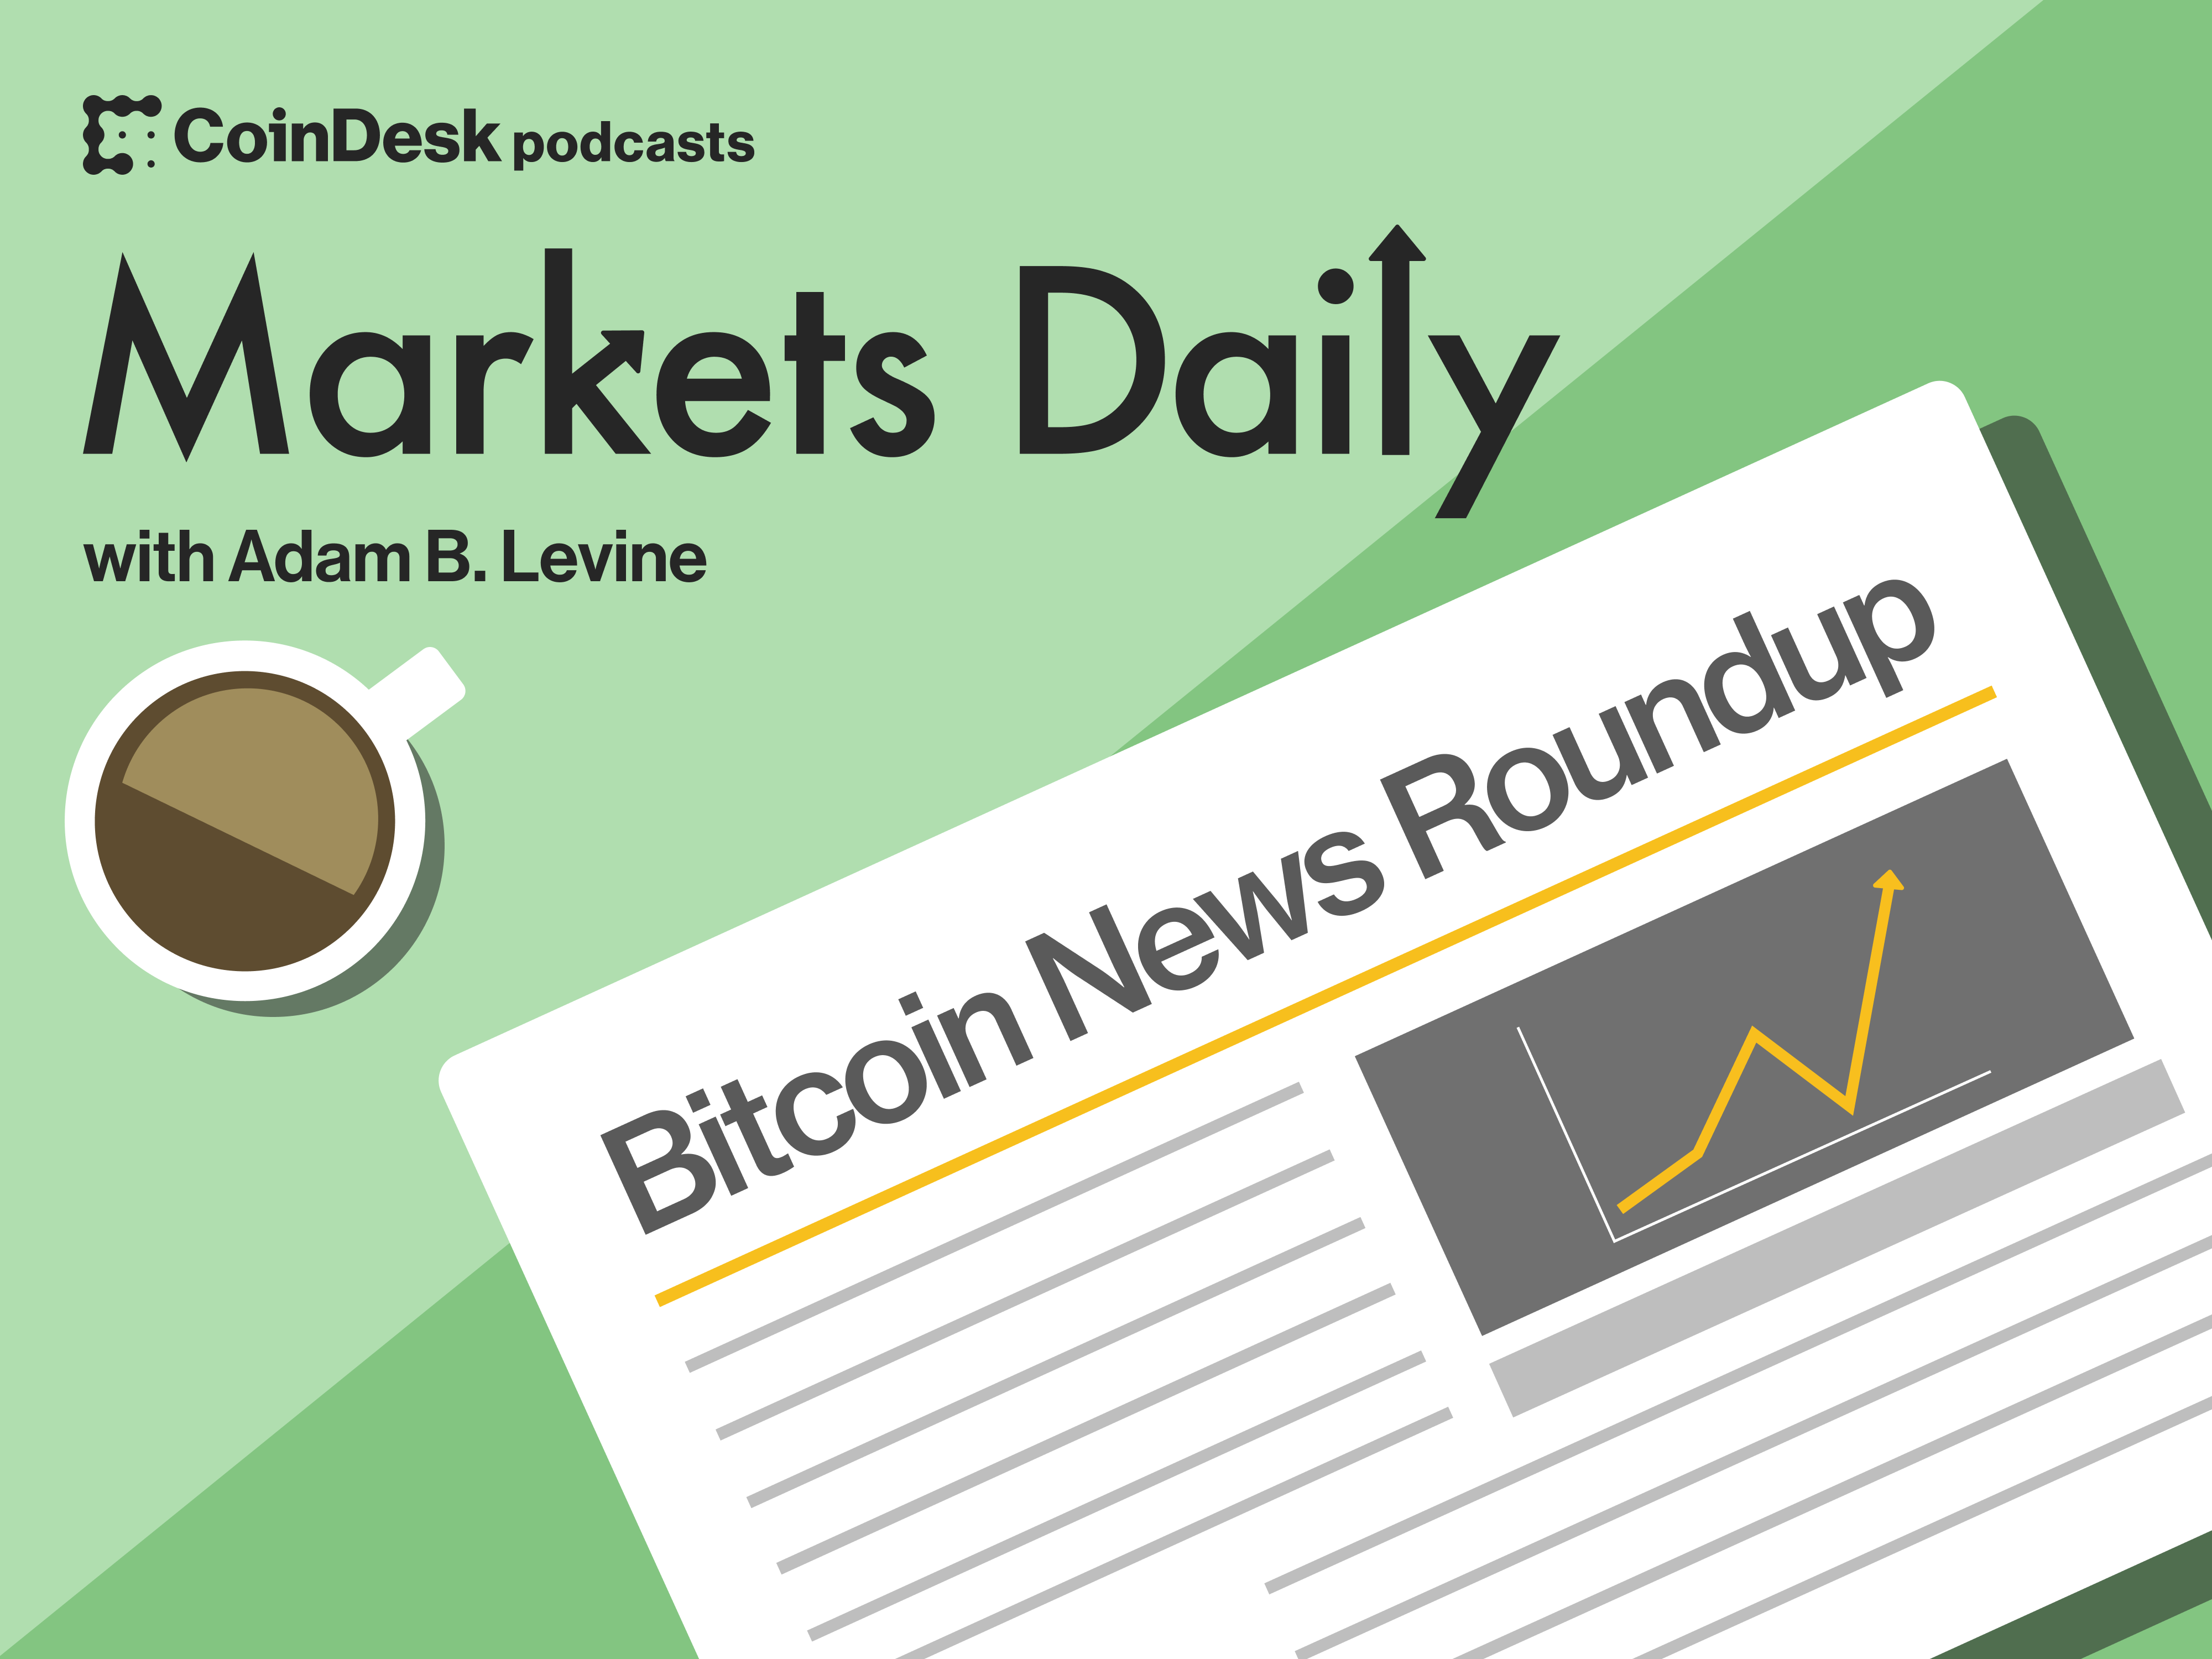 Crypto News Roundup for Oct. 26, 2021